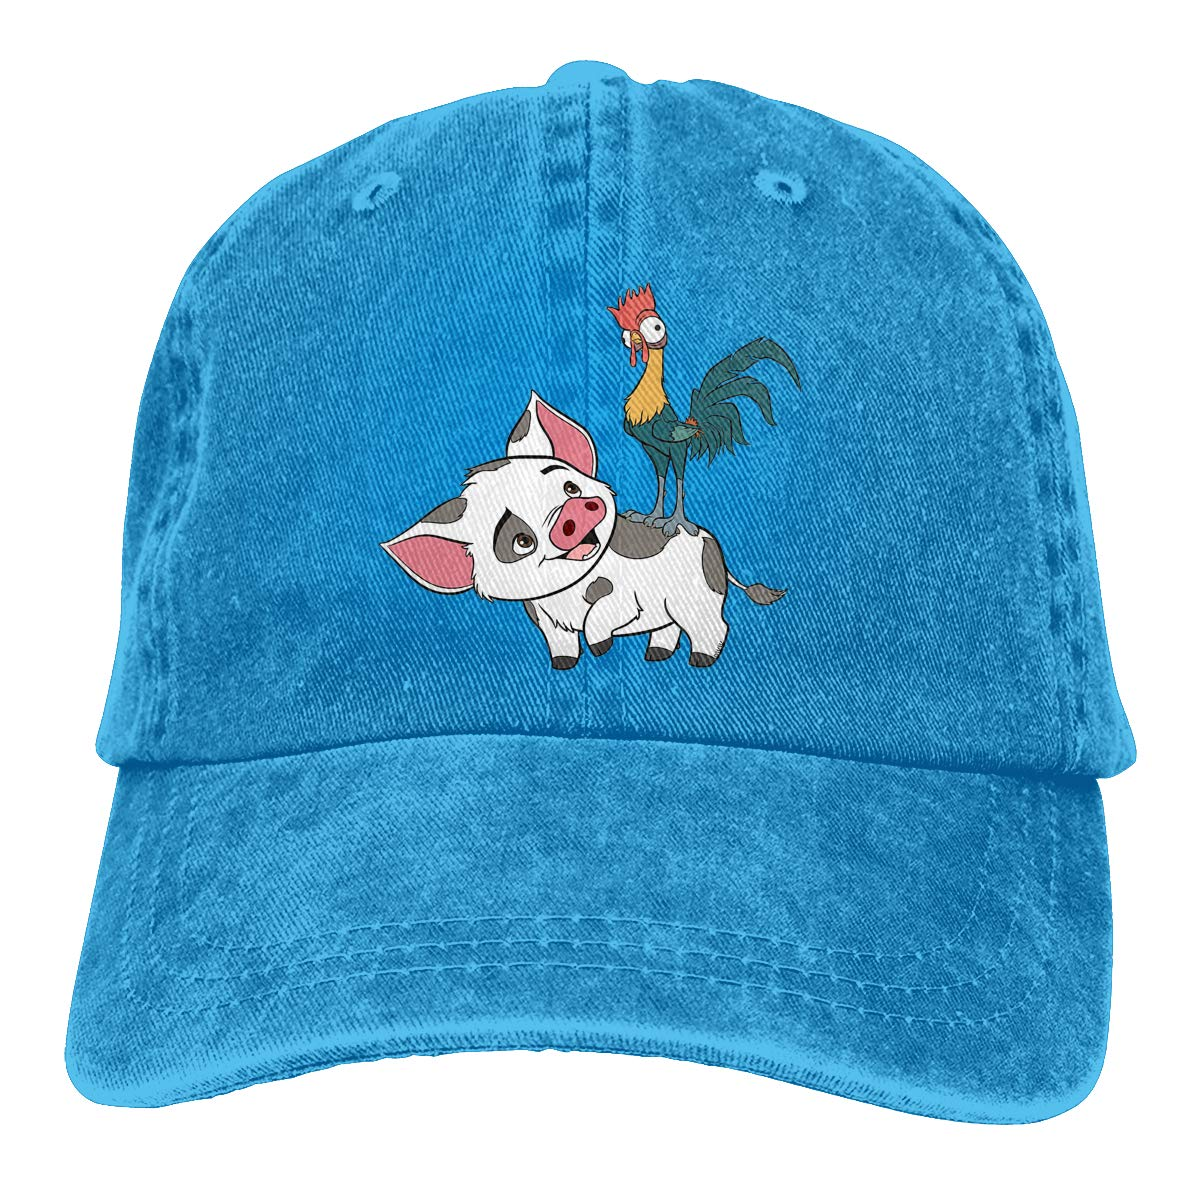 Unisex Moana Pua and Chicken Vintage Washed Dad Hat Cute Adjustable Baseball Cap